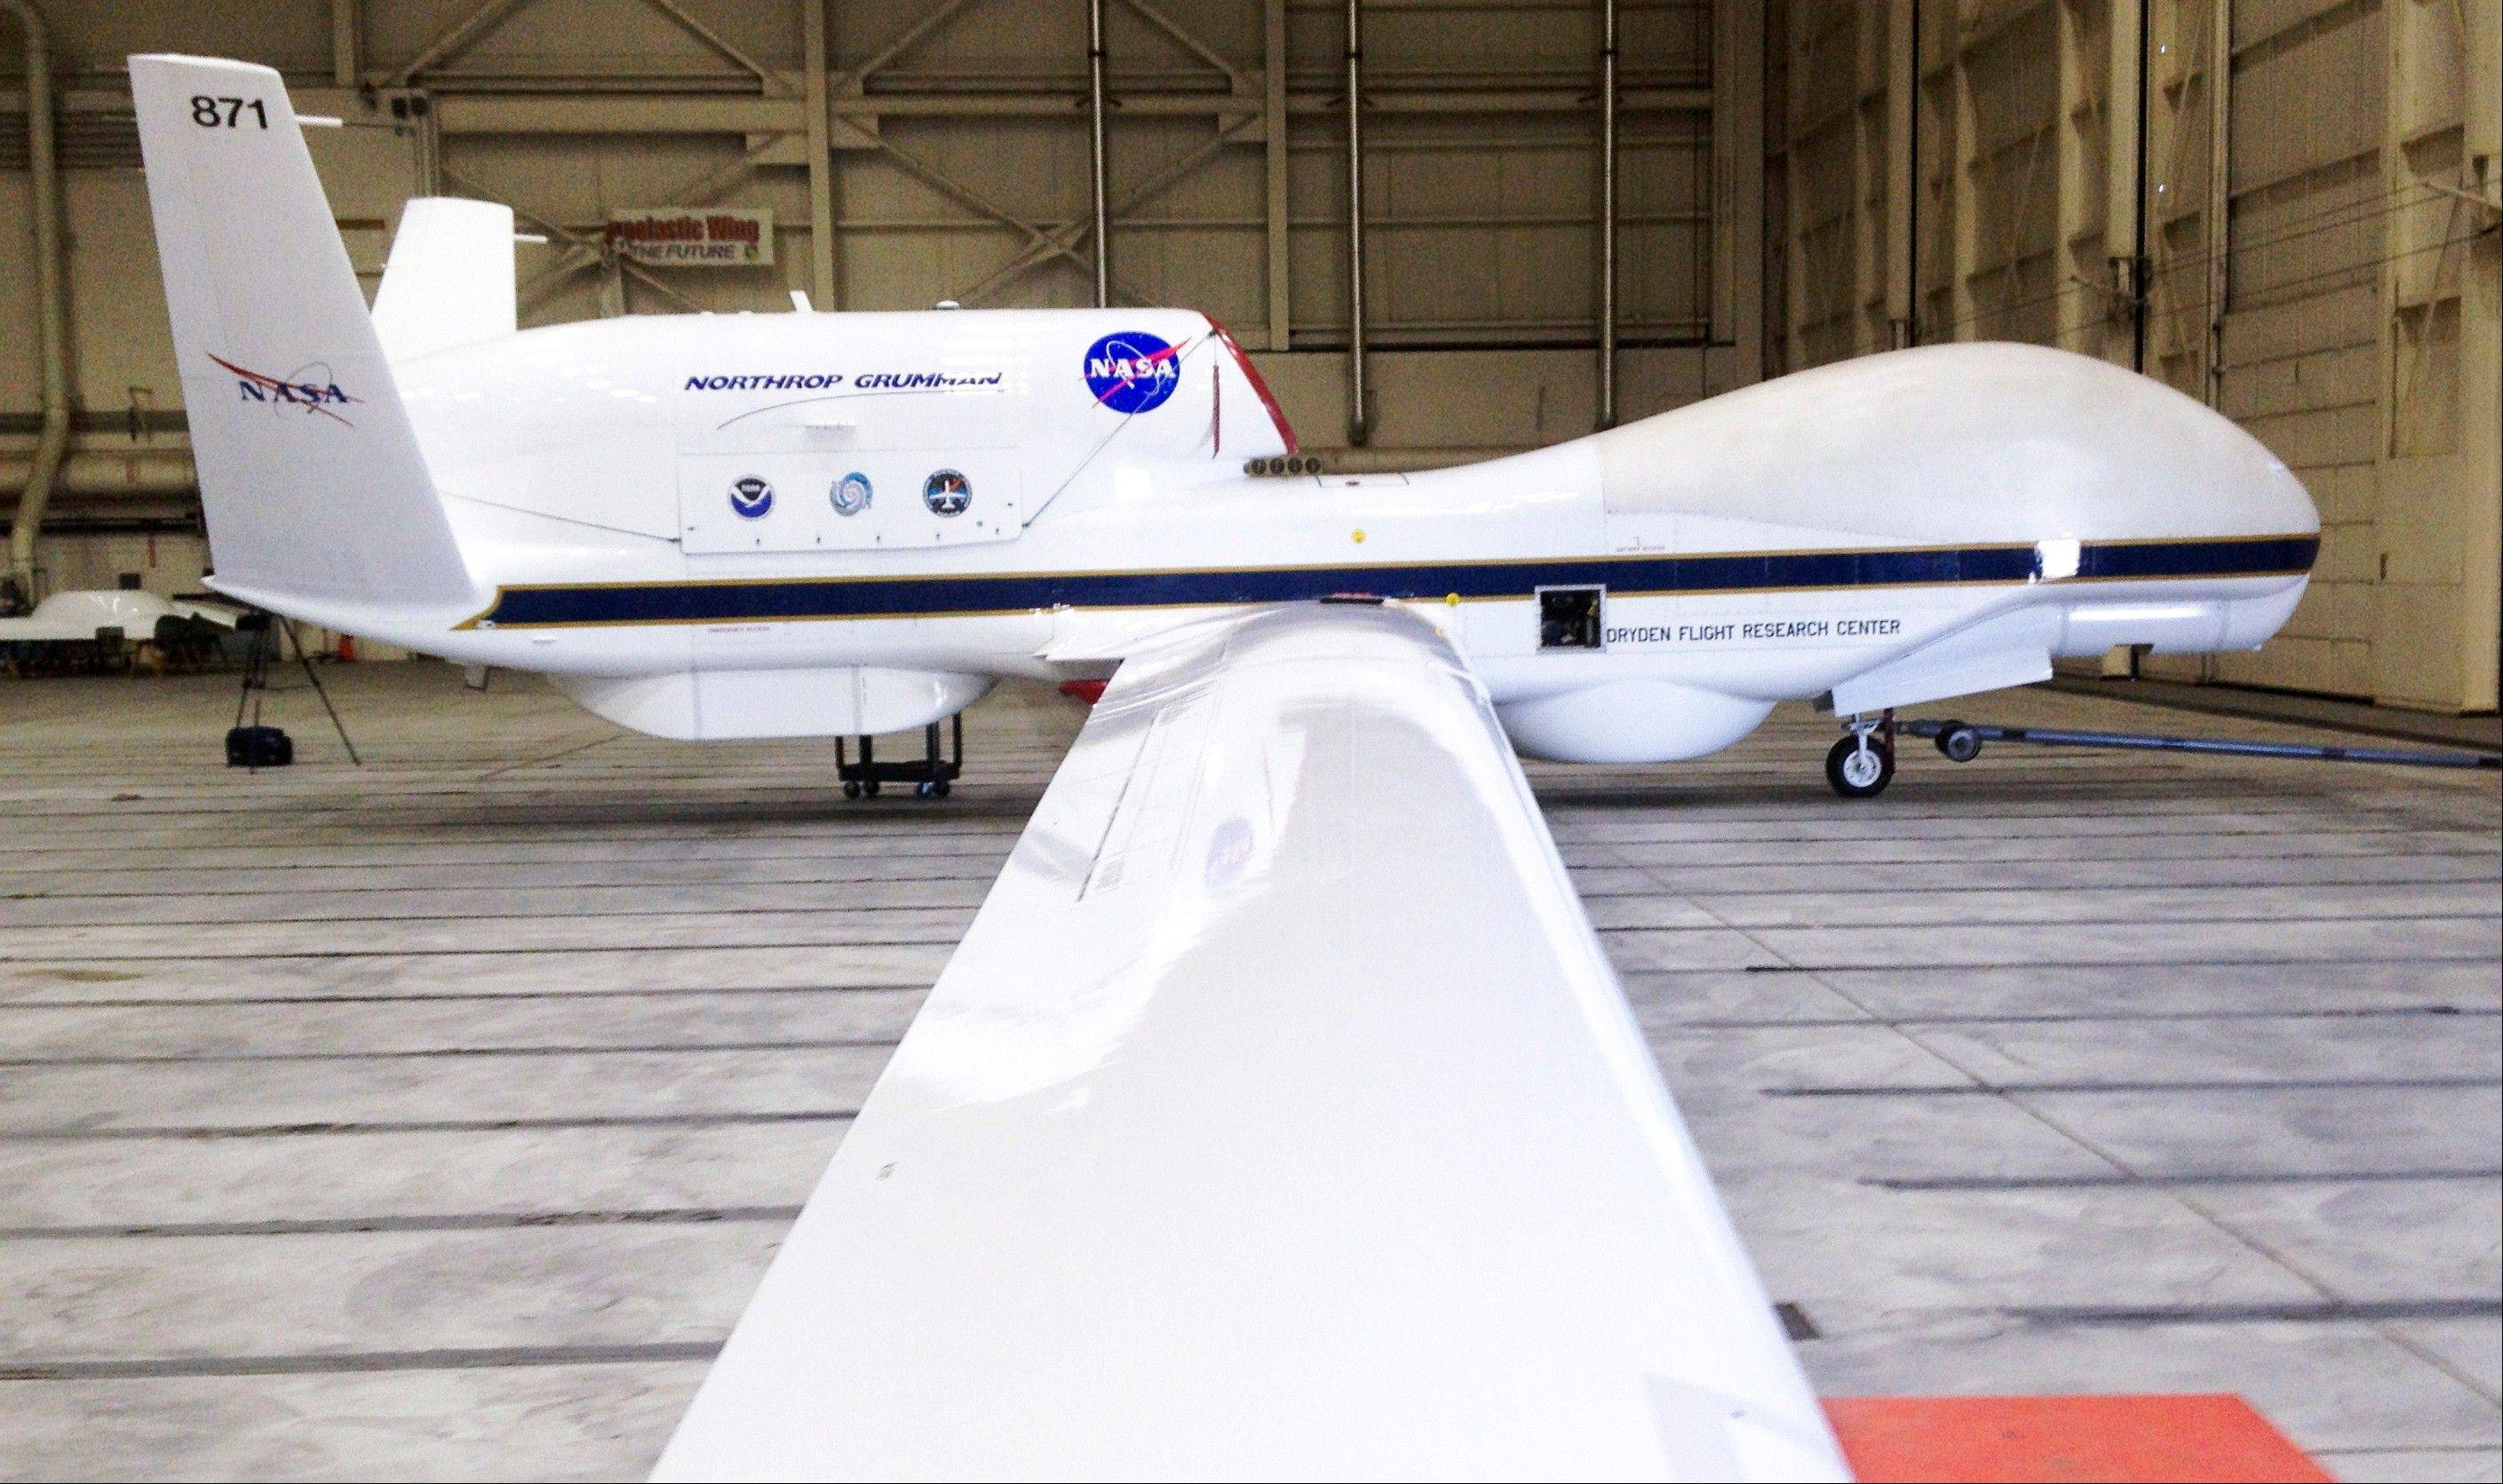 The Reaper drone, now known as a Global Hawk, is seen at Edwards Air Force Base in California. The Federal Aviation Administration announced six states on Monday that will develop test sit